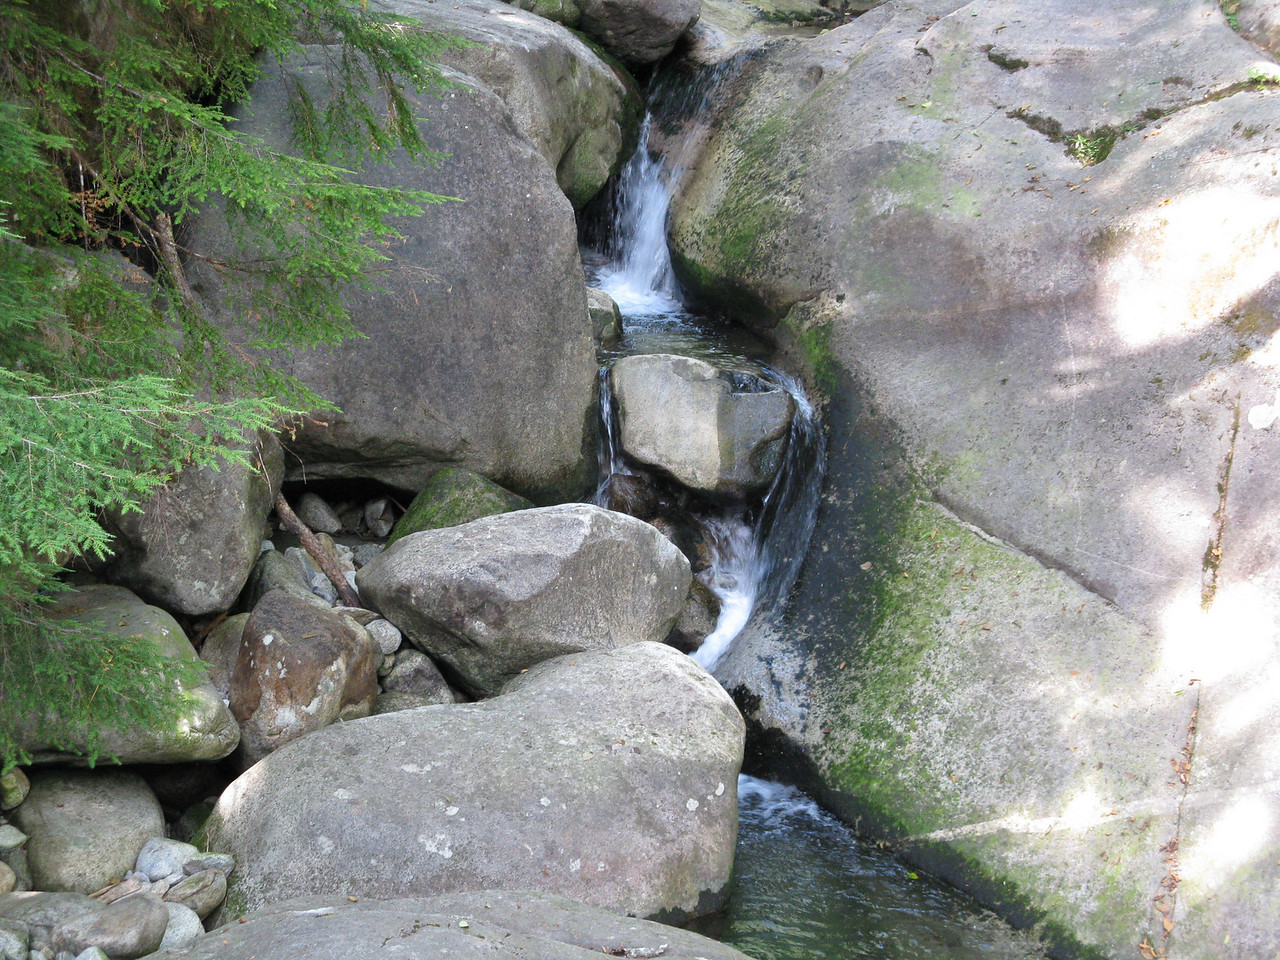 A closer view of the little water falls.